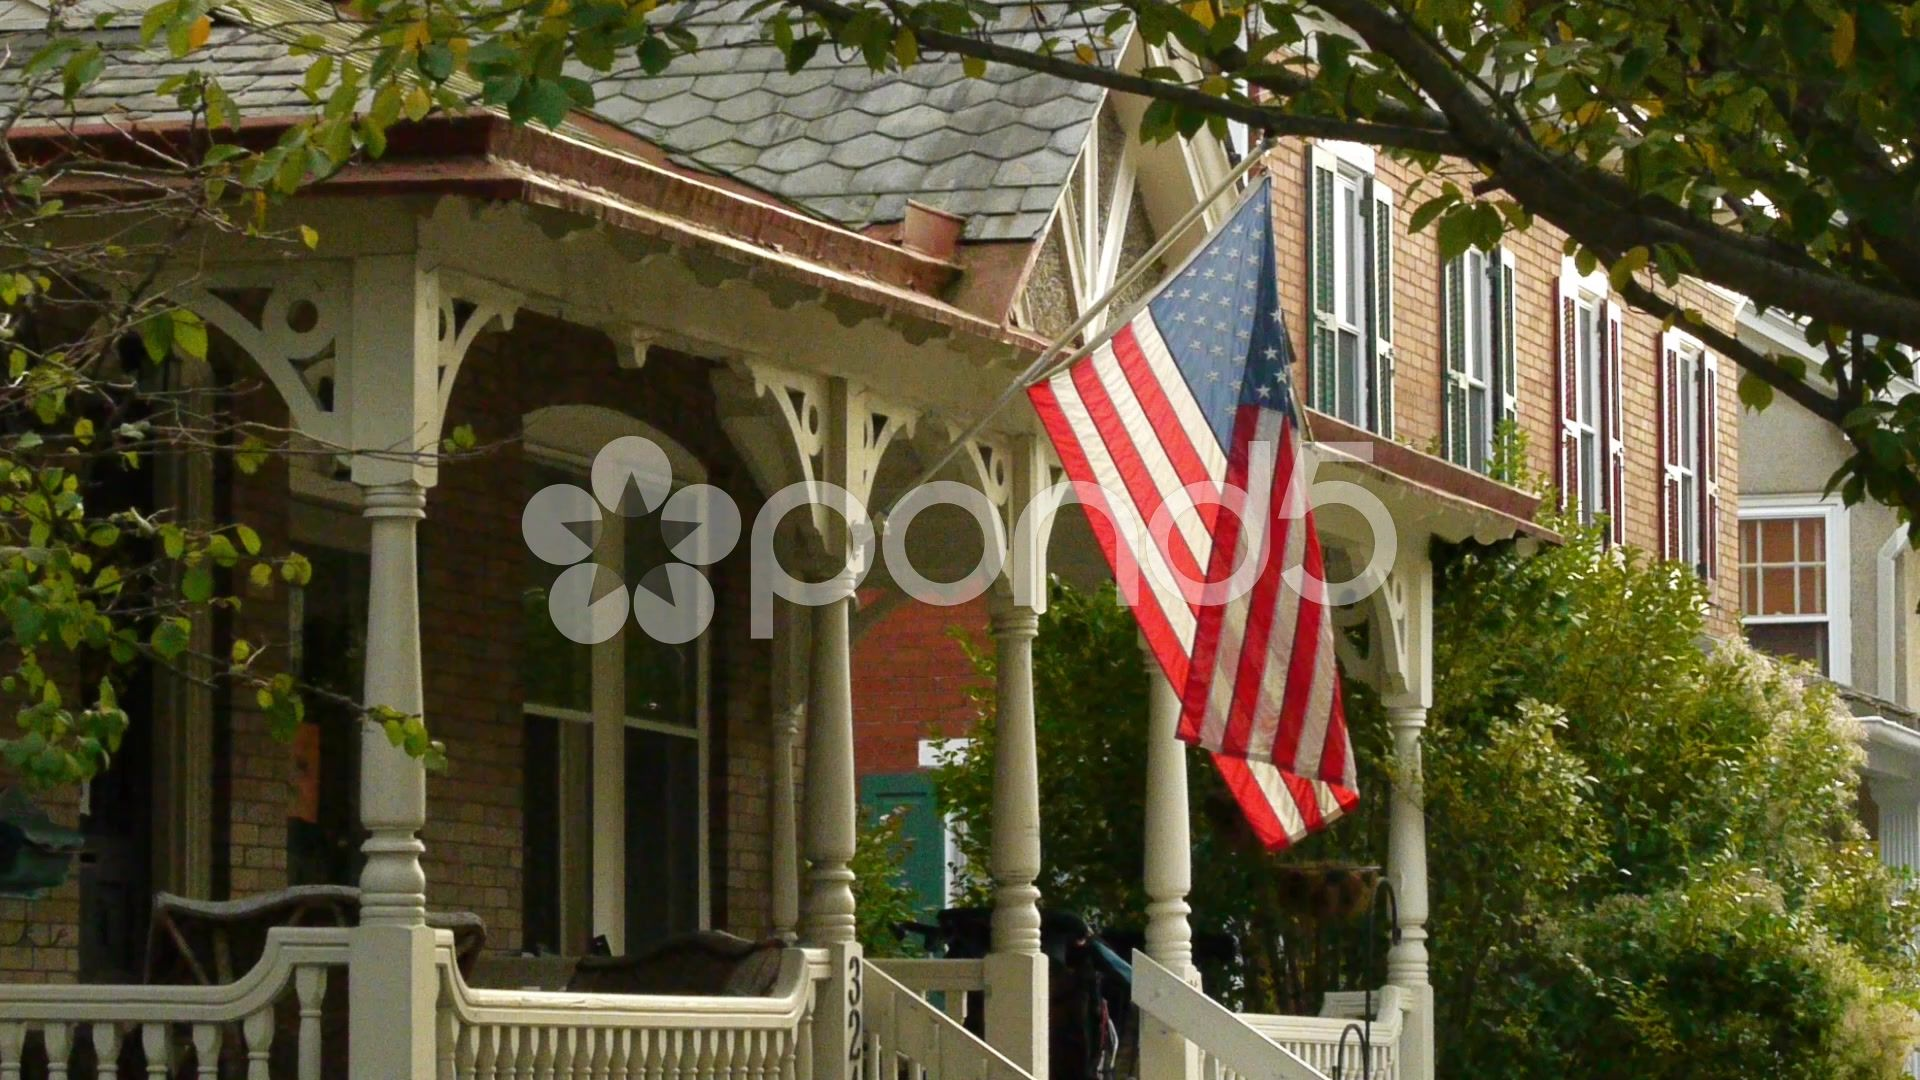 American house golden hour flag 2 of 2 Stock Footage goldenhouseAmericanhour